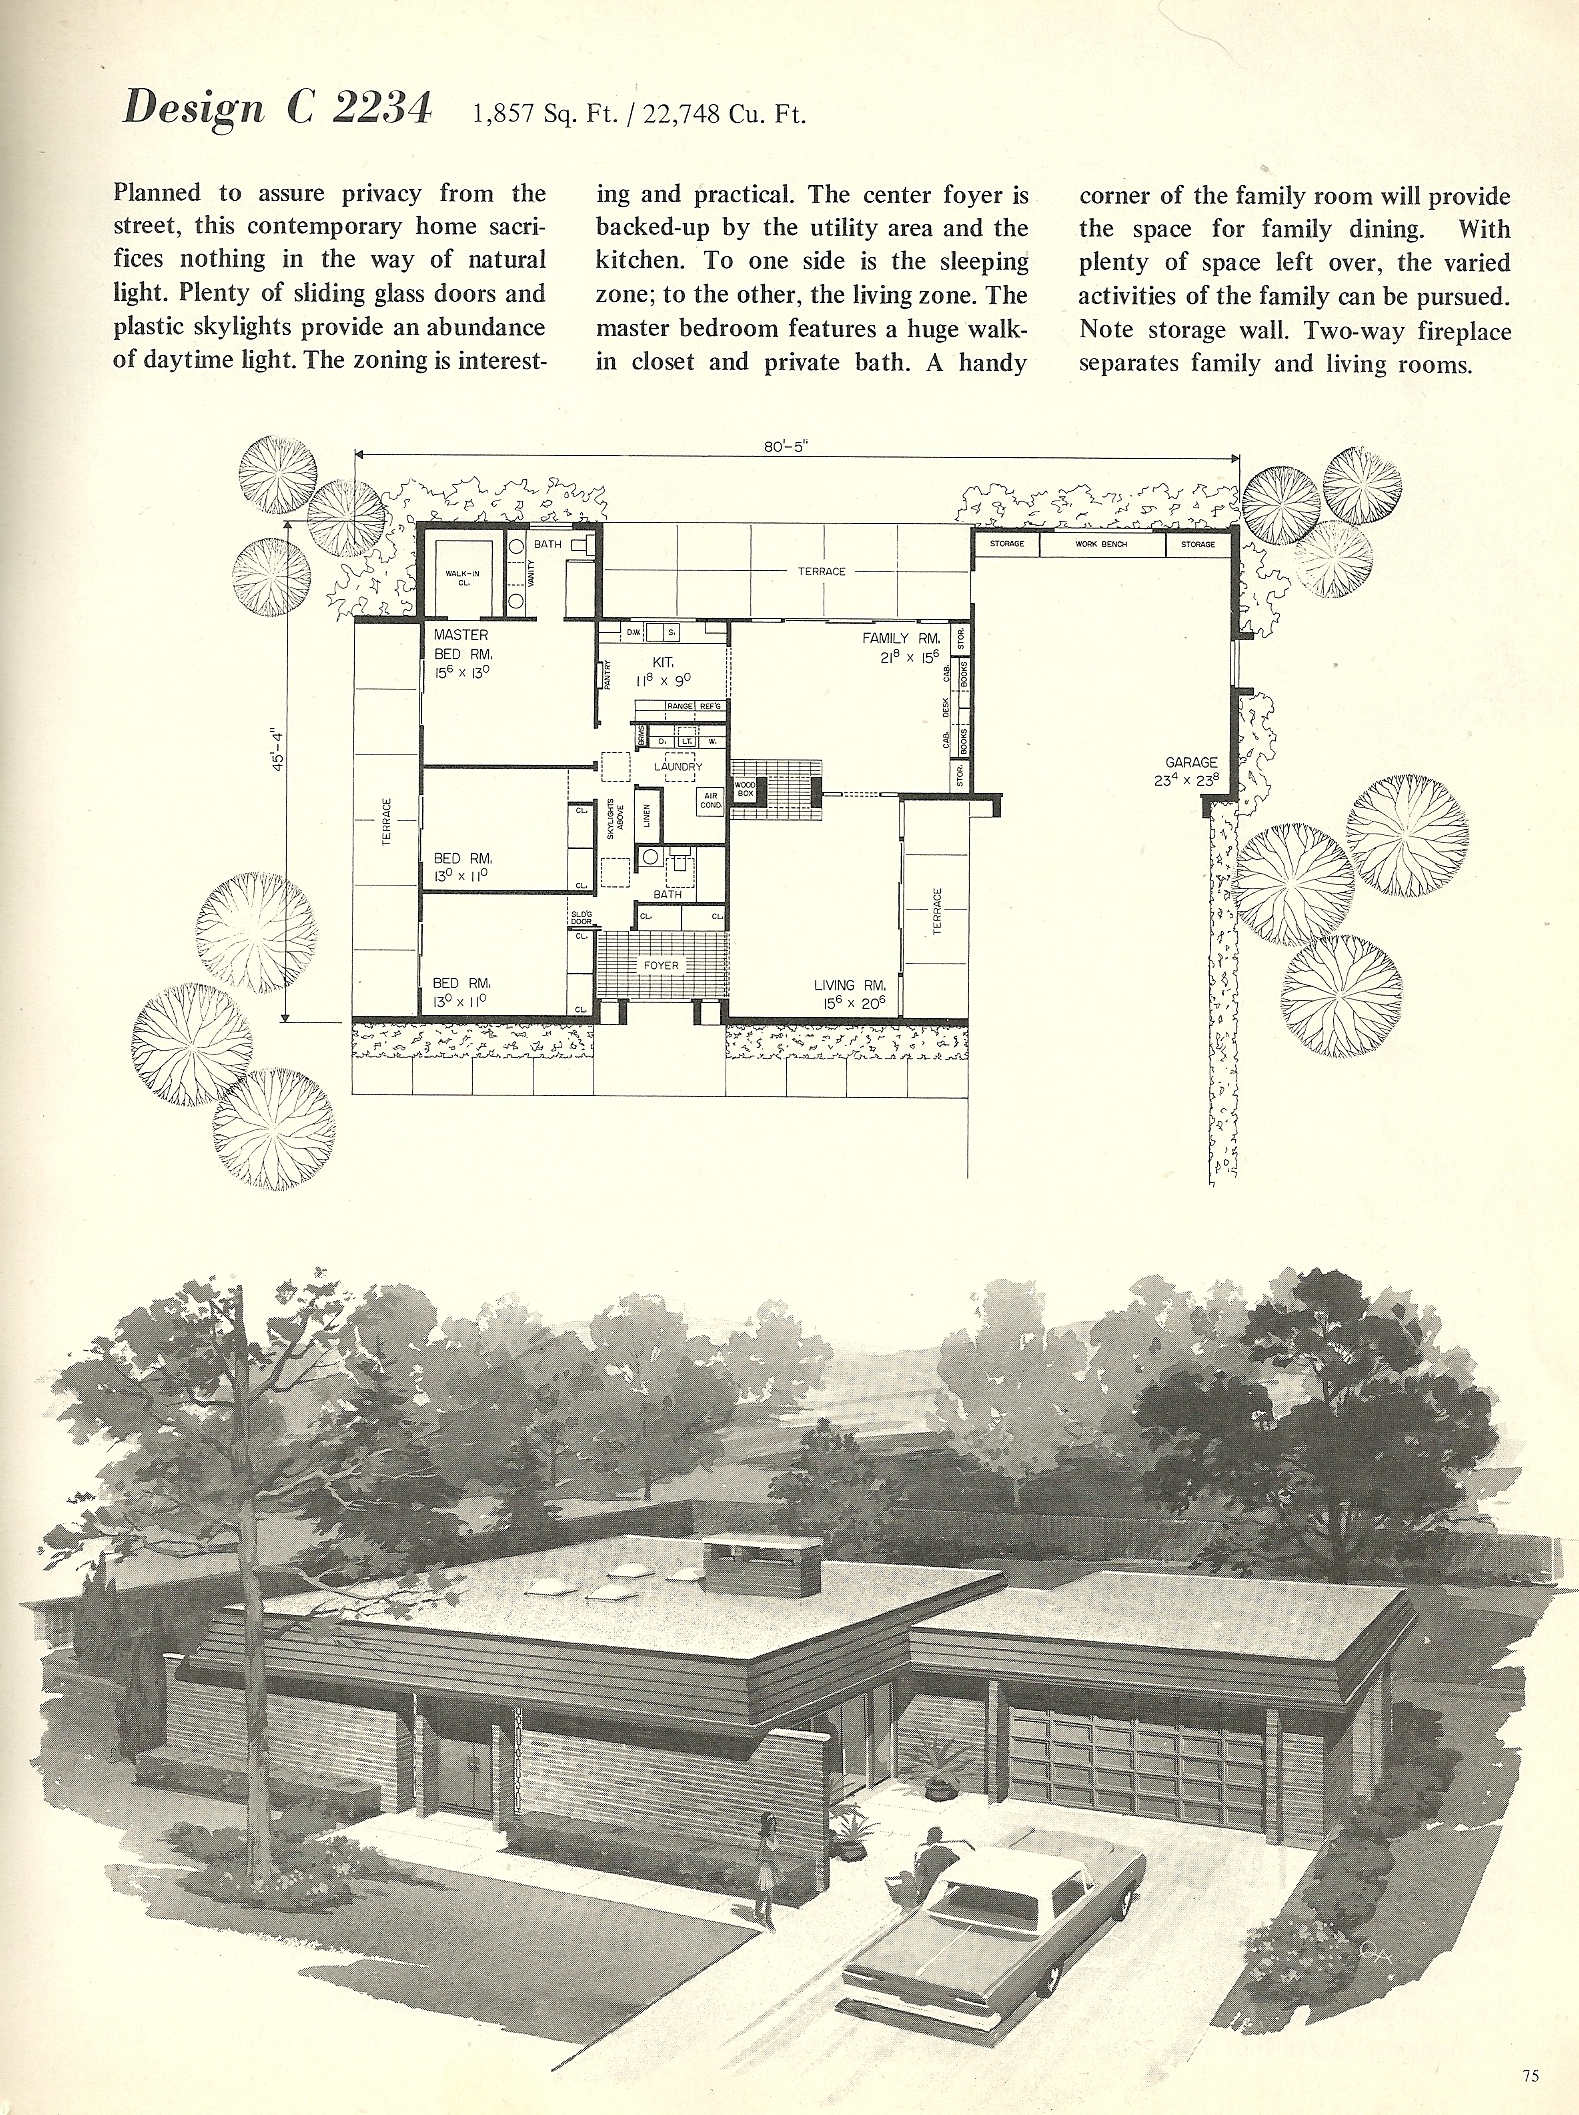 Vintage house plans 2234 antique alter ego for Modern house history